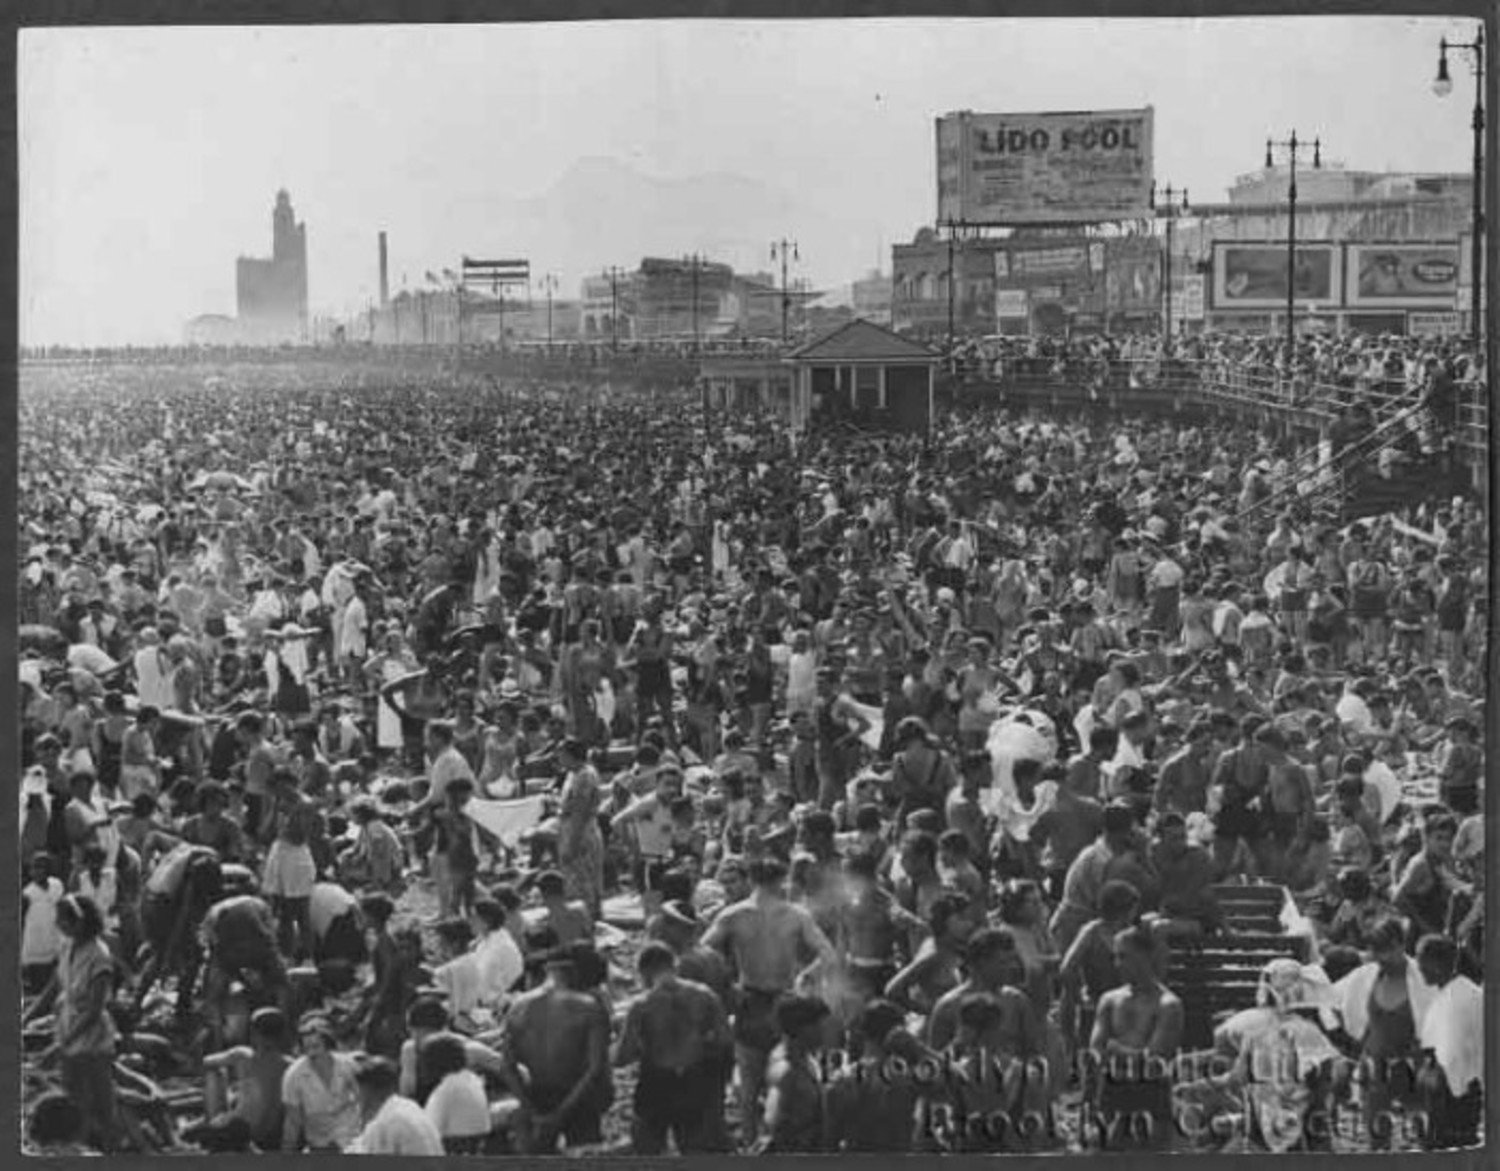 The crowded beach in the 1930s.